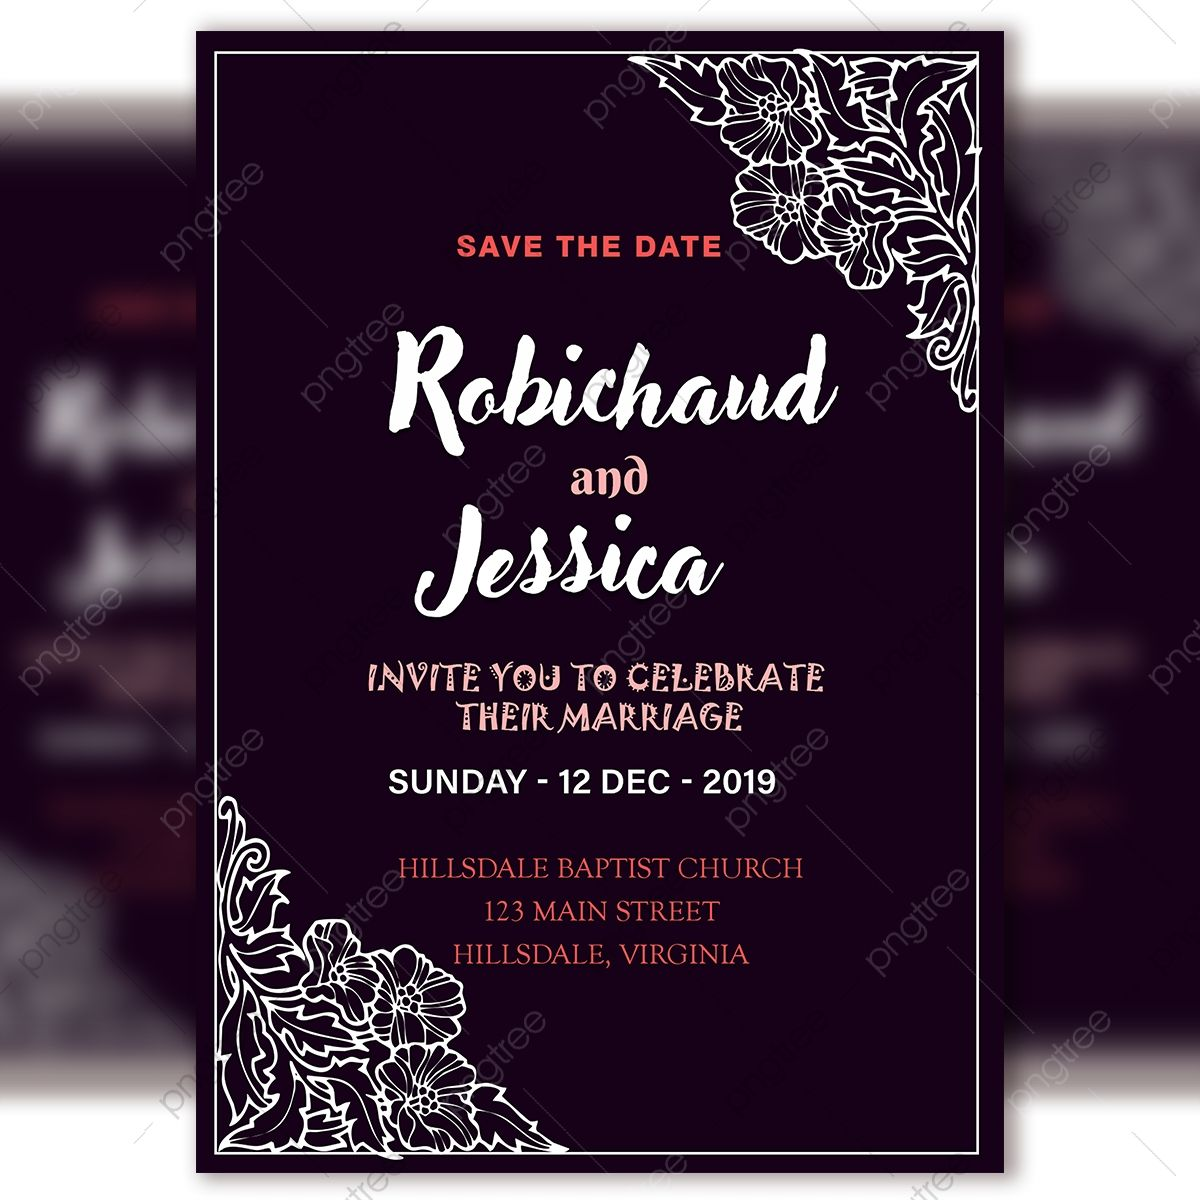 8 Awesome Invitation Card Template Psd Vintage Wedding Invitation Cards Wedding Invitation Card Template Vintage Wedding Invitations